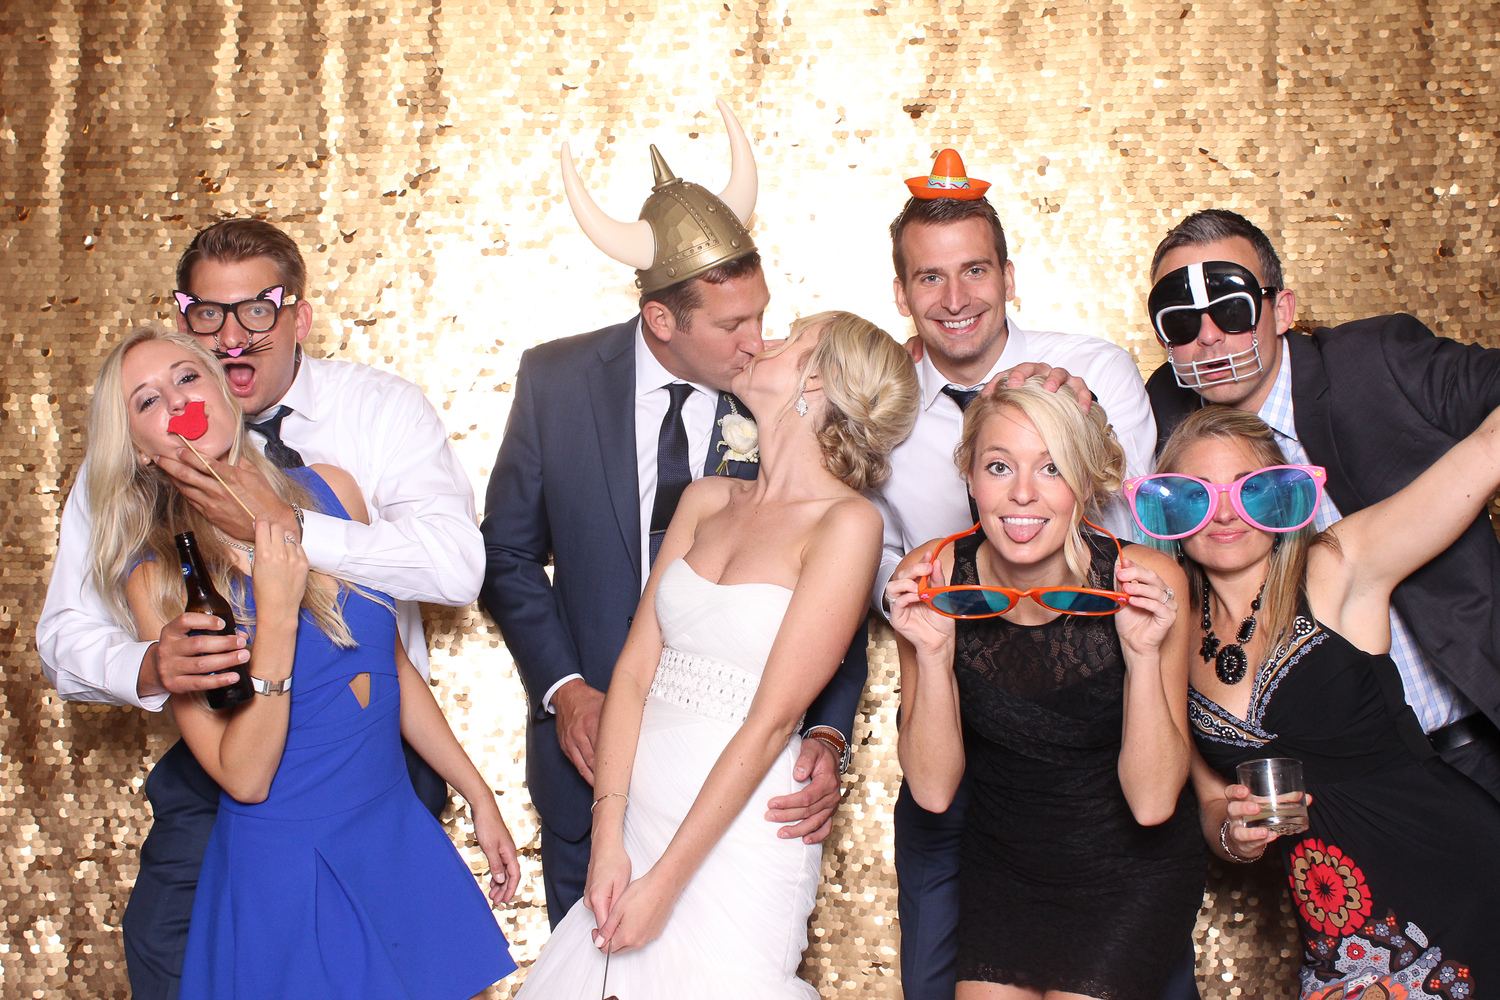 00147-Cleveland+Wedding+Photo+Booth+Open+Air+at+Hillbrook-20150912.jpg